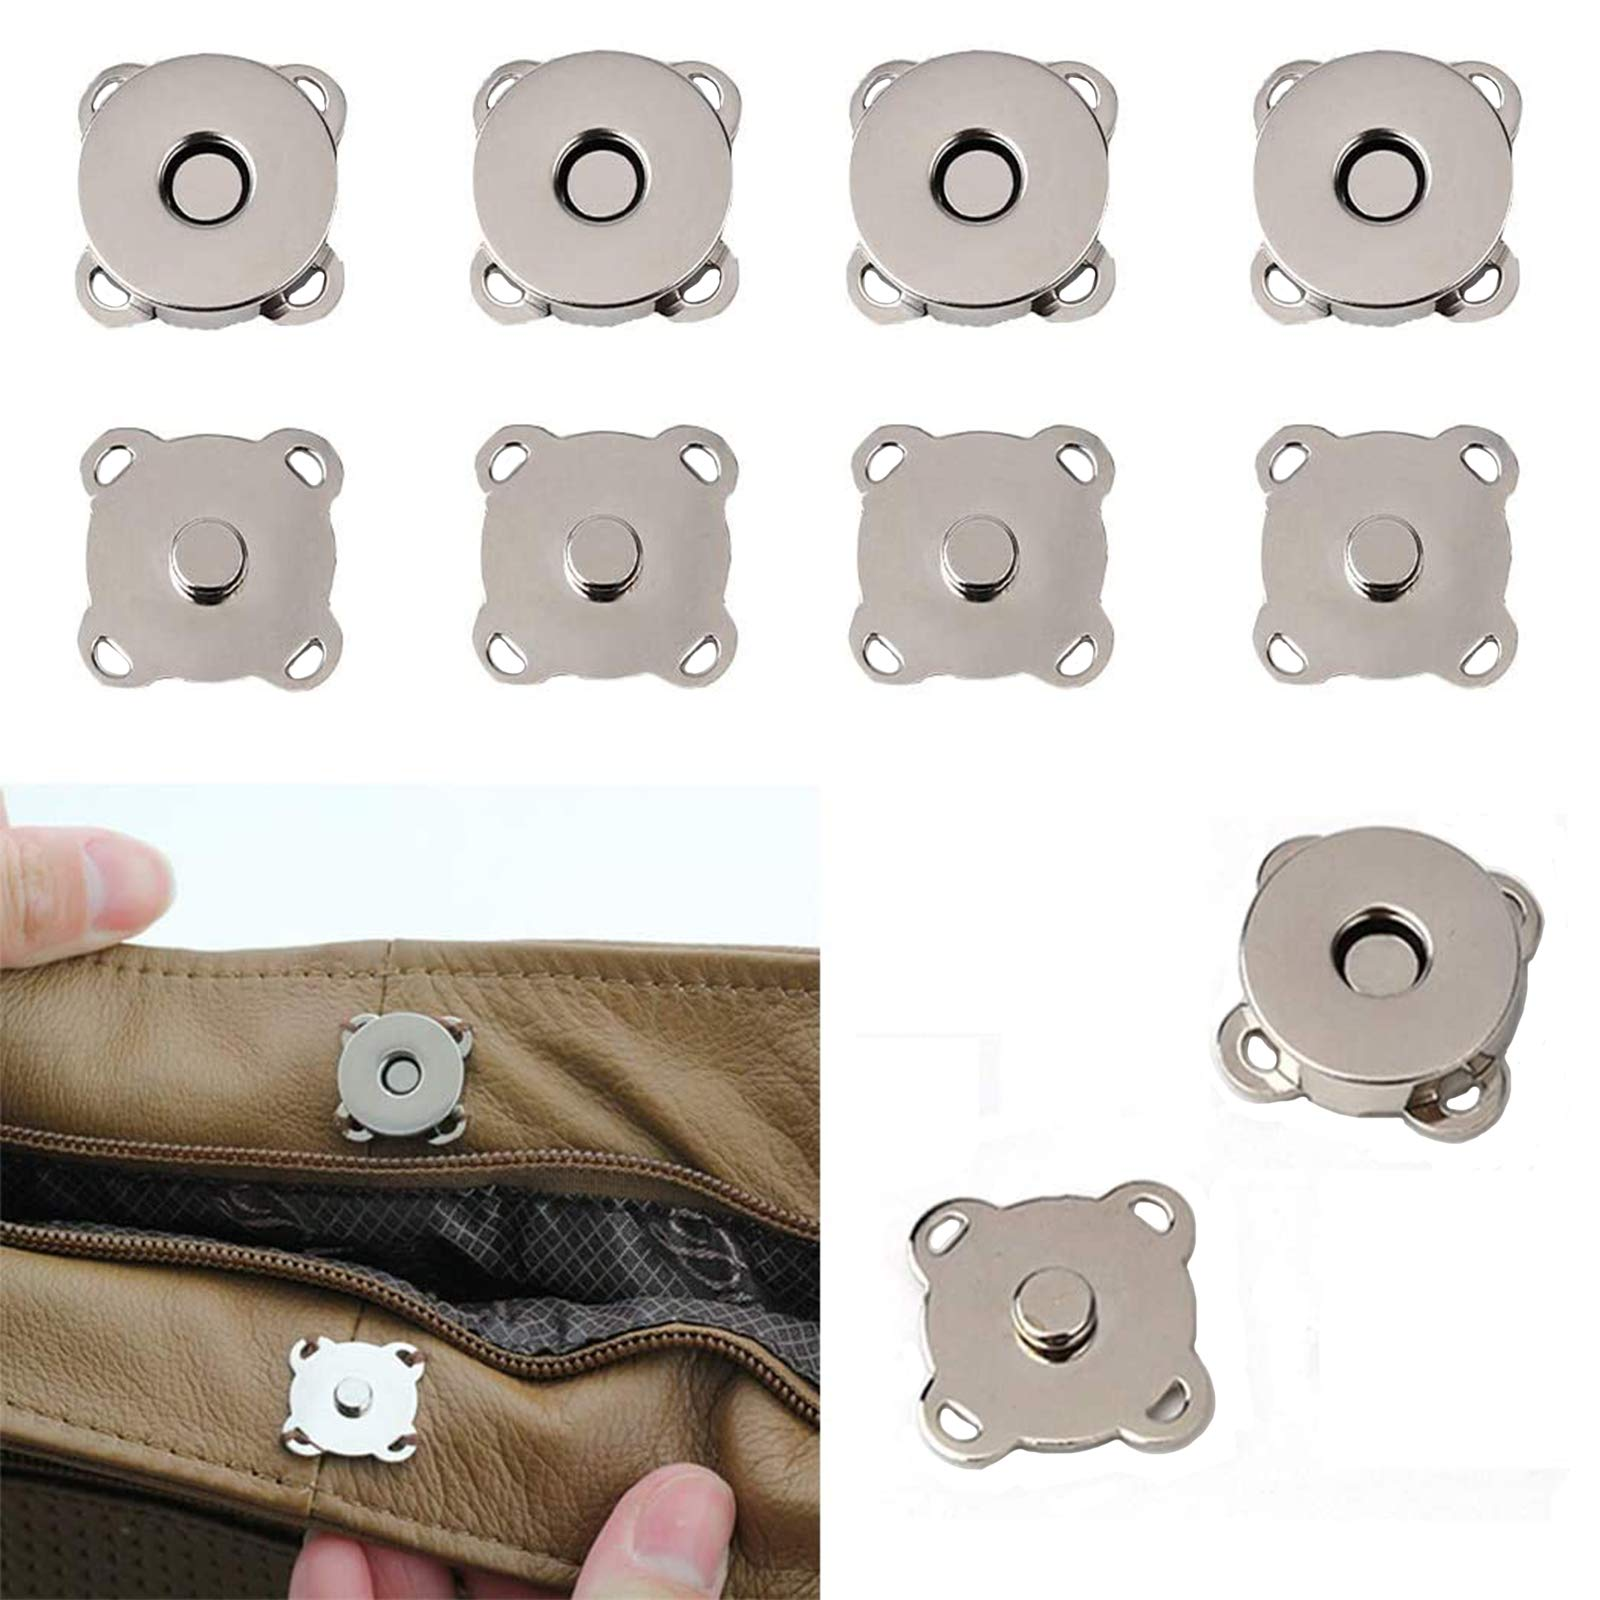 20 Sets Magnetic Snaps Button for Purse Handbag Wallet Overcoat Bag 19 mm Silver Fasteners Snap Buttons (19mm)